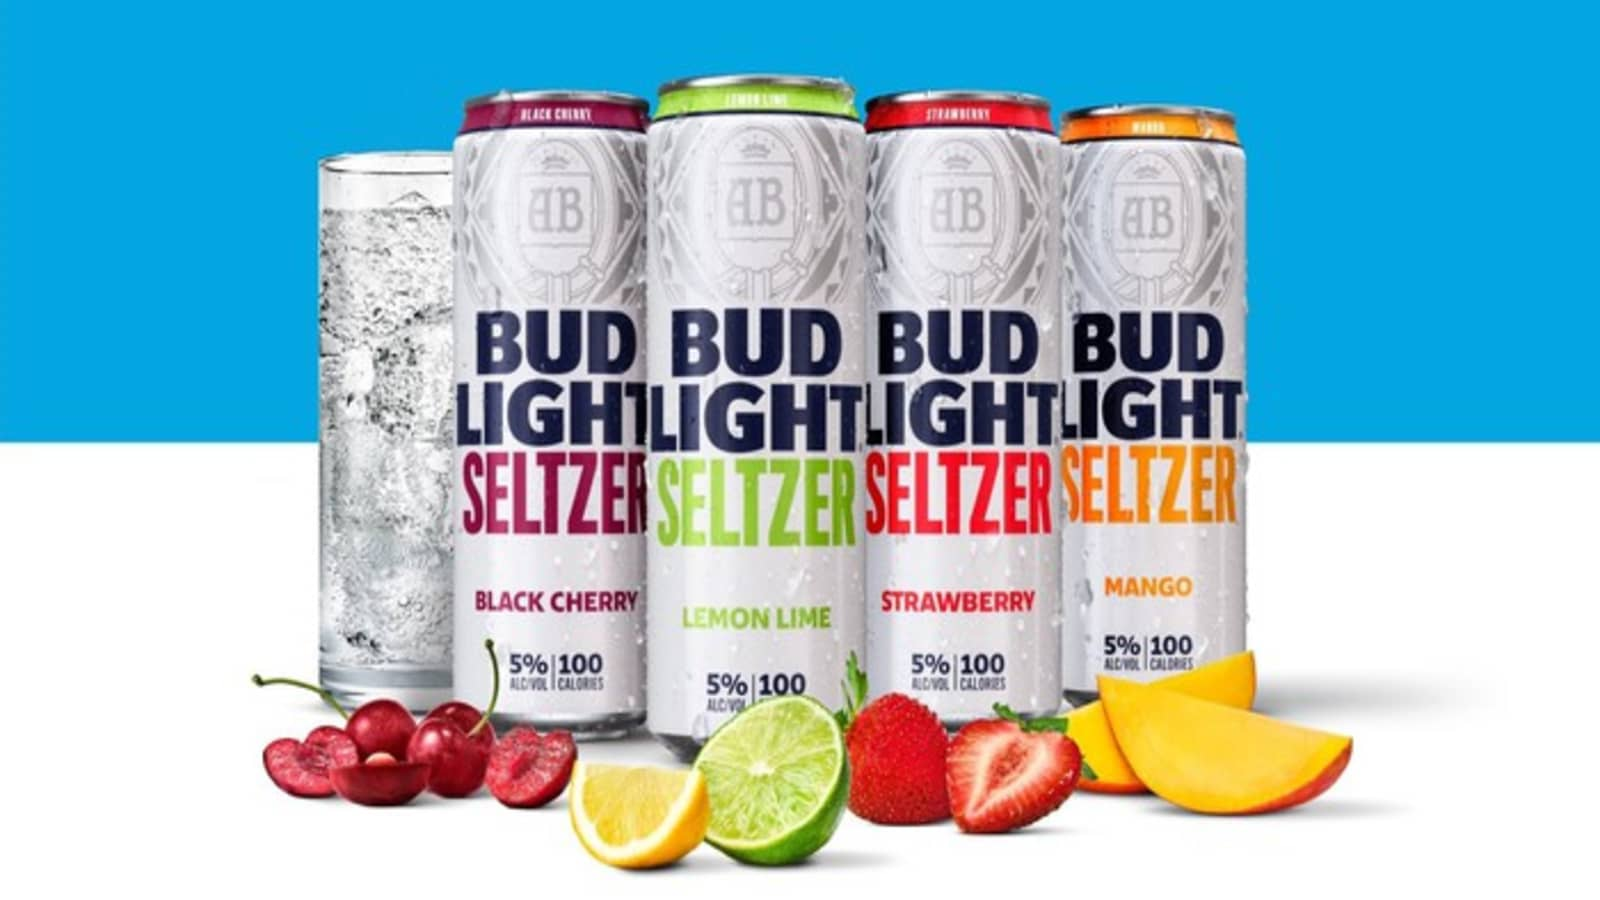 Anheuser Busch Invests 100 Million In Hard Seltzer The Drink Craze